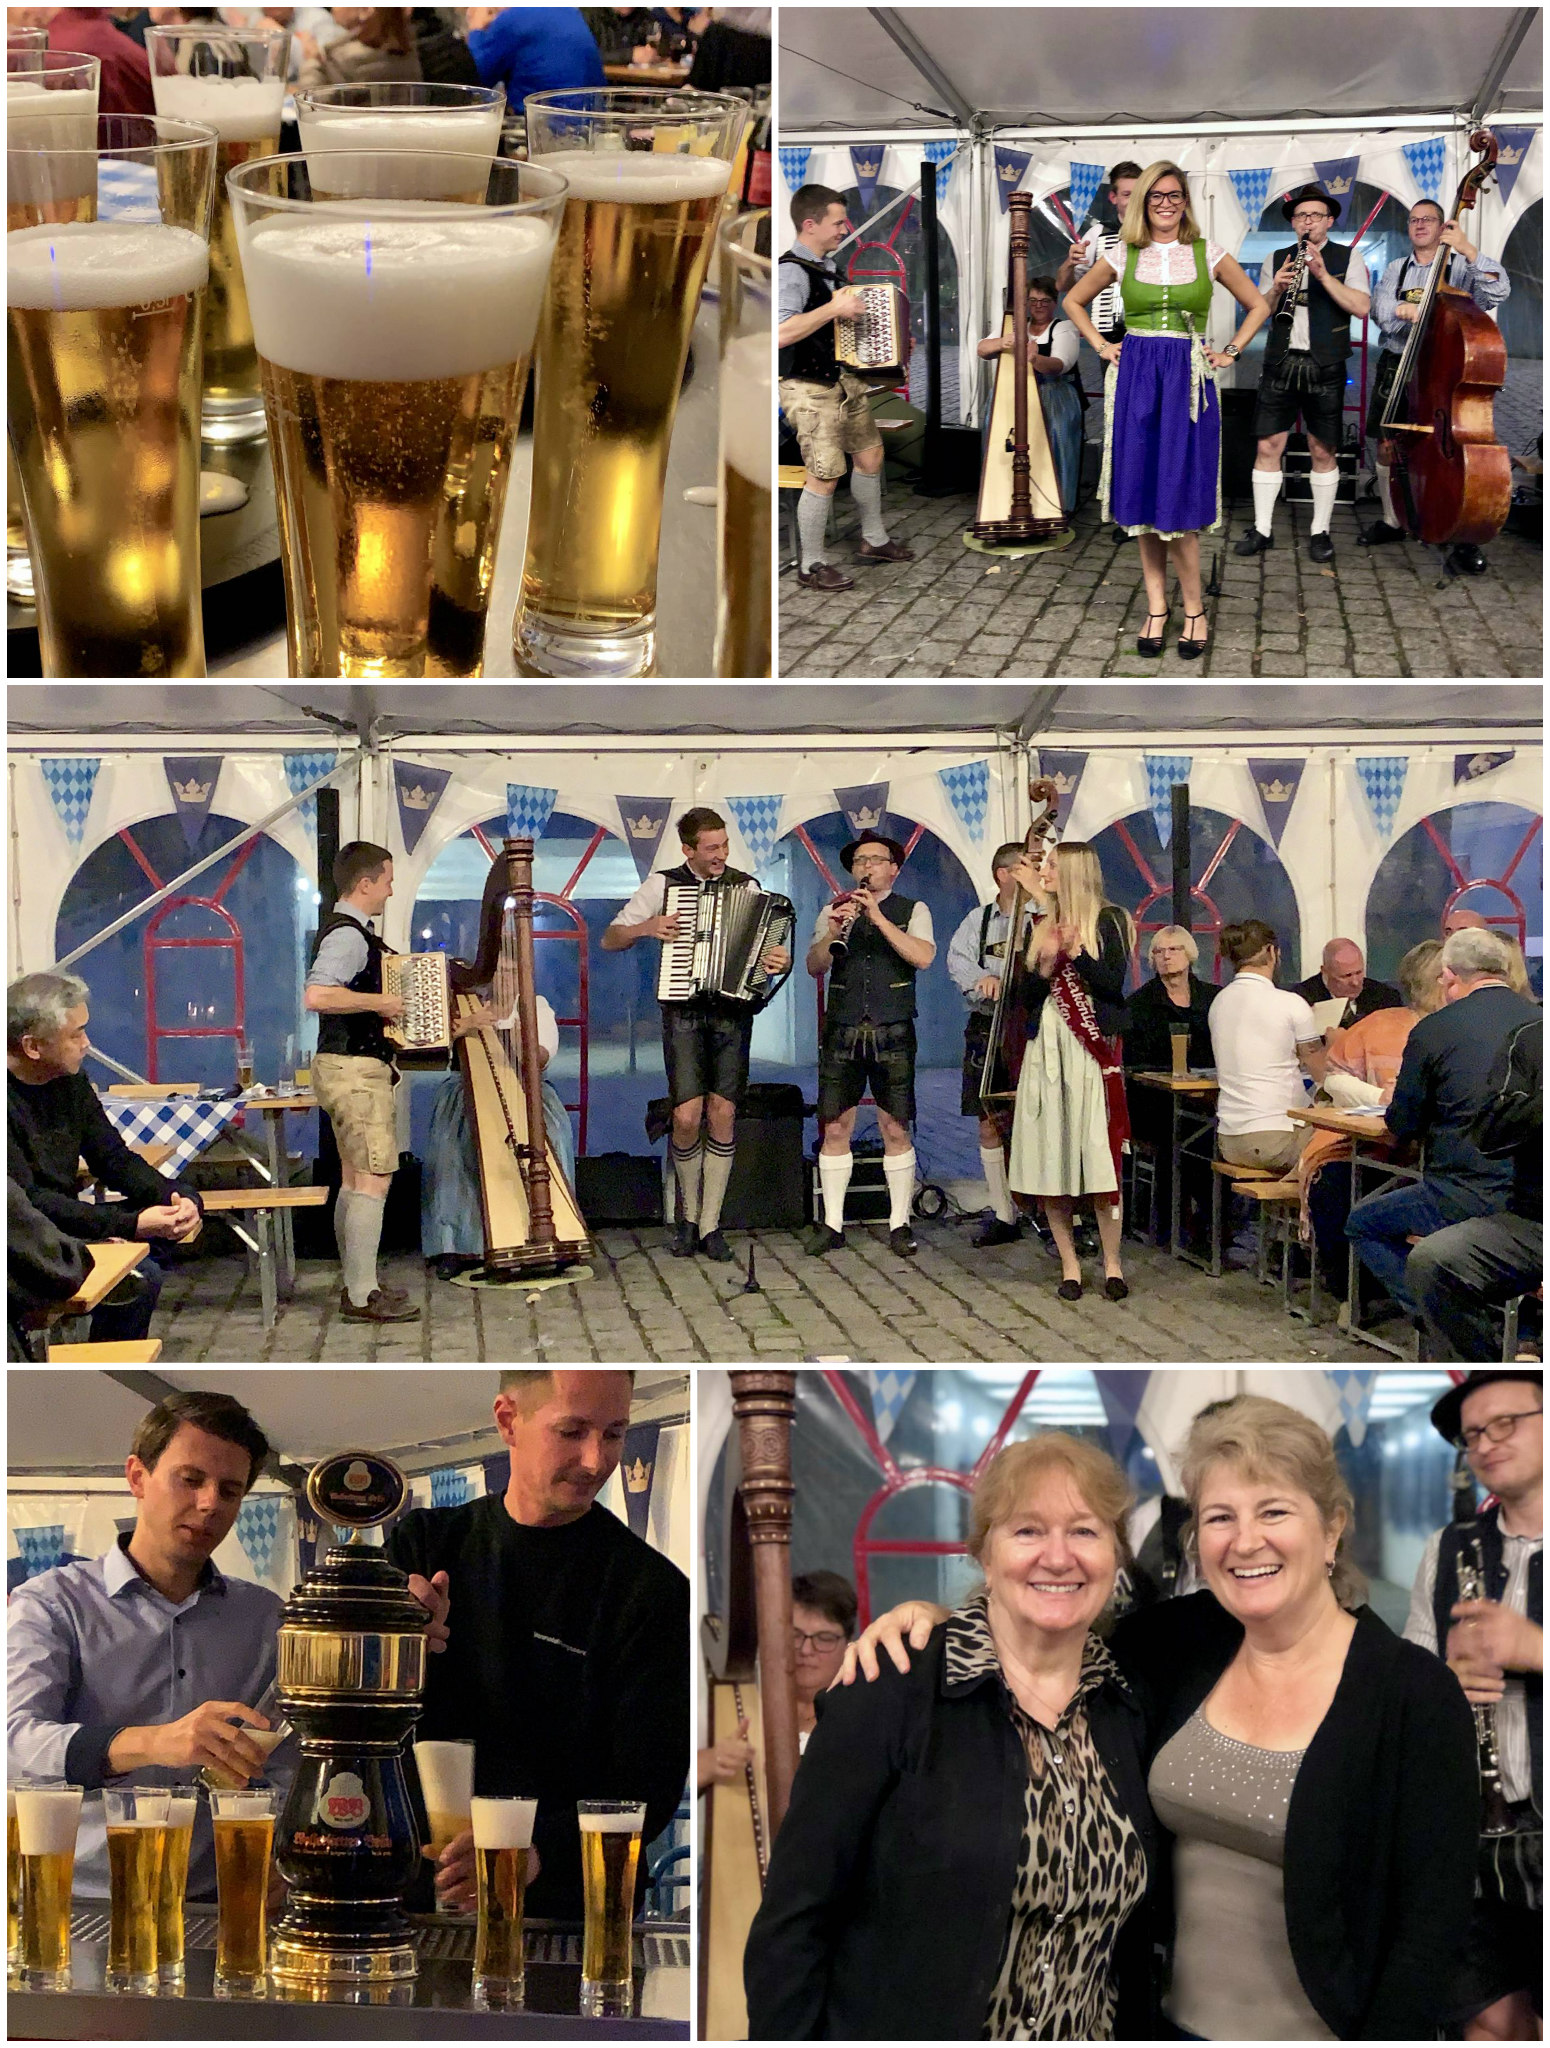 oktoberfest AmaWaterways